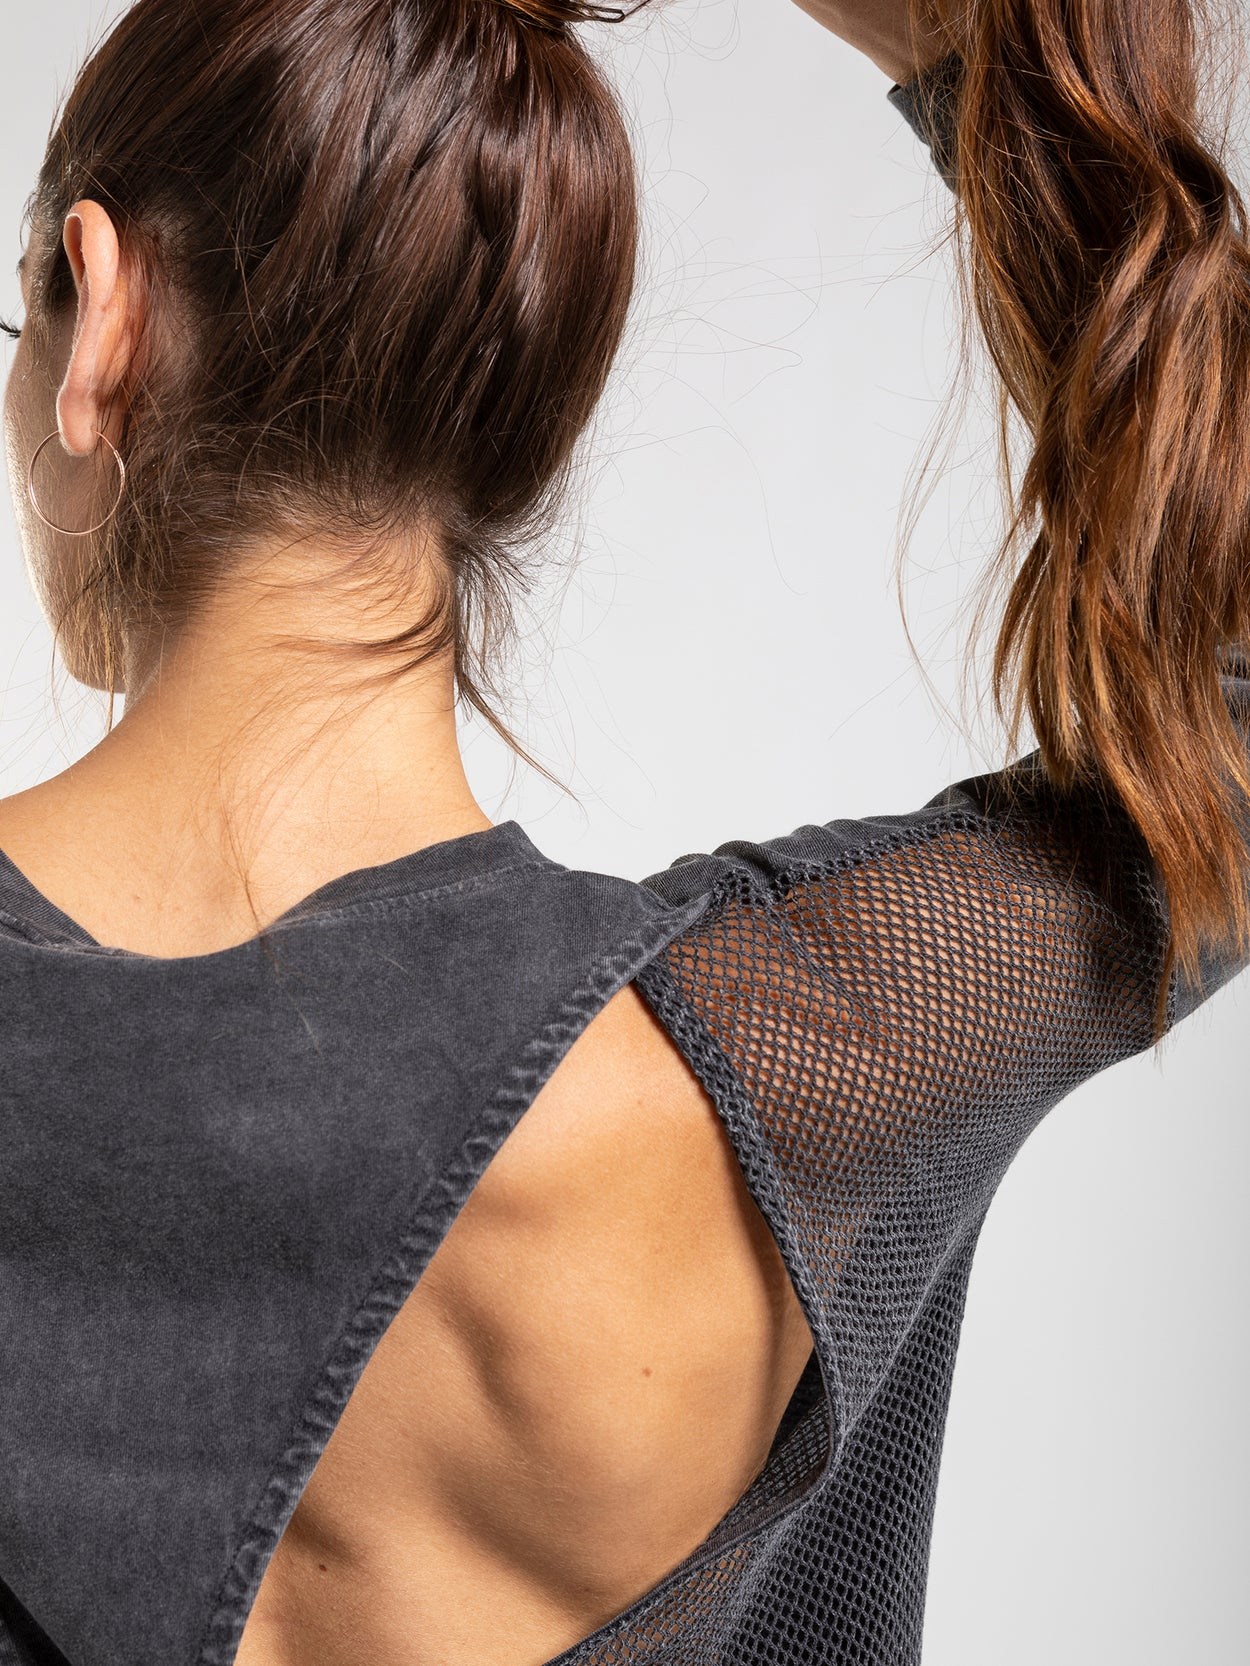 Long sleeve top with netted mesh back detail.